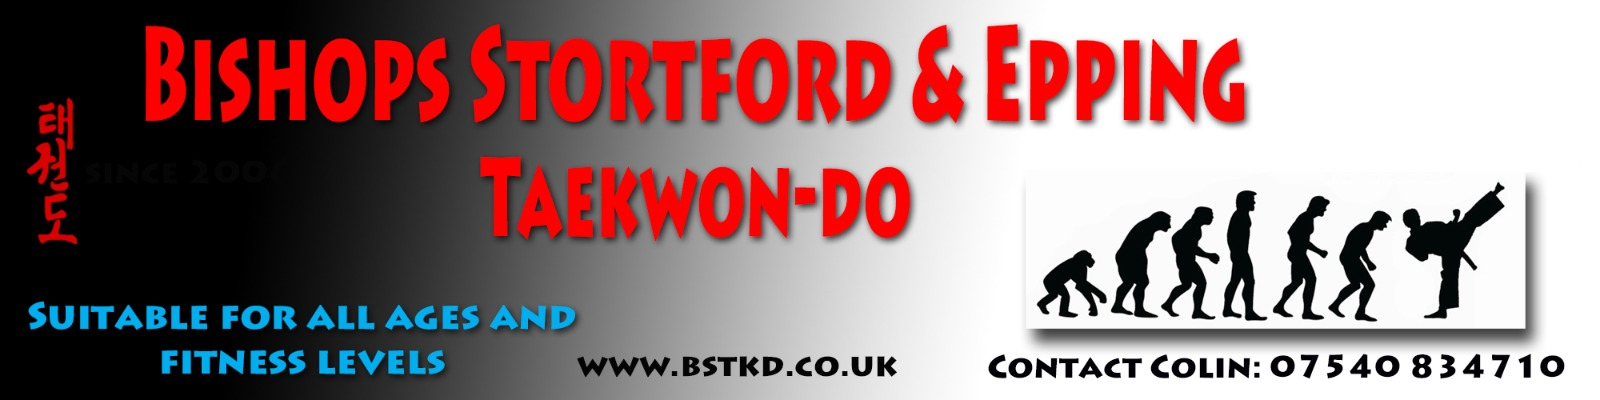 Bishops Stortford & Epping Taekwon-do